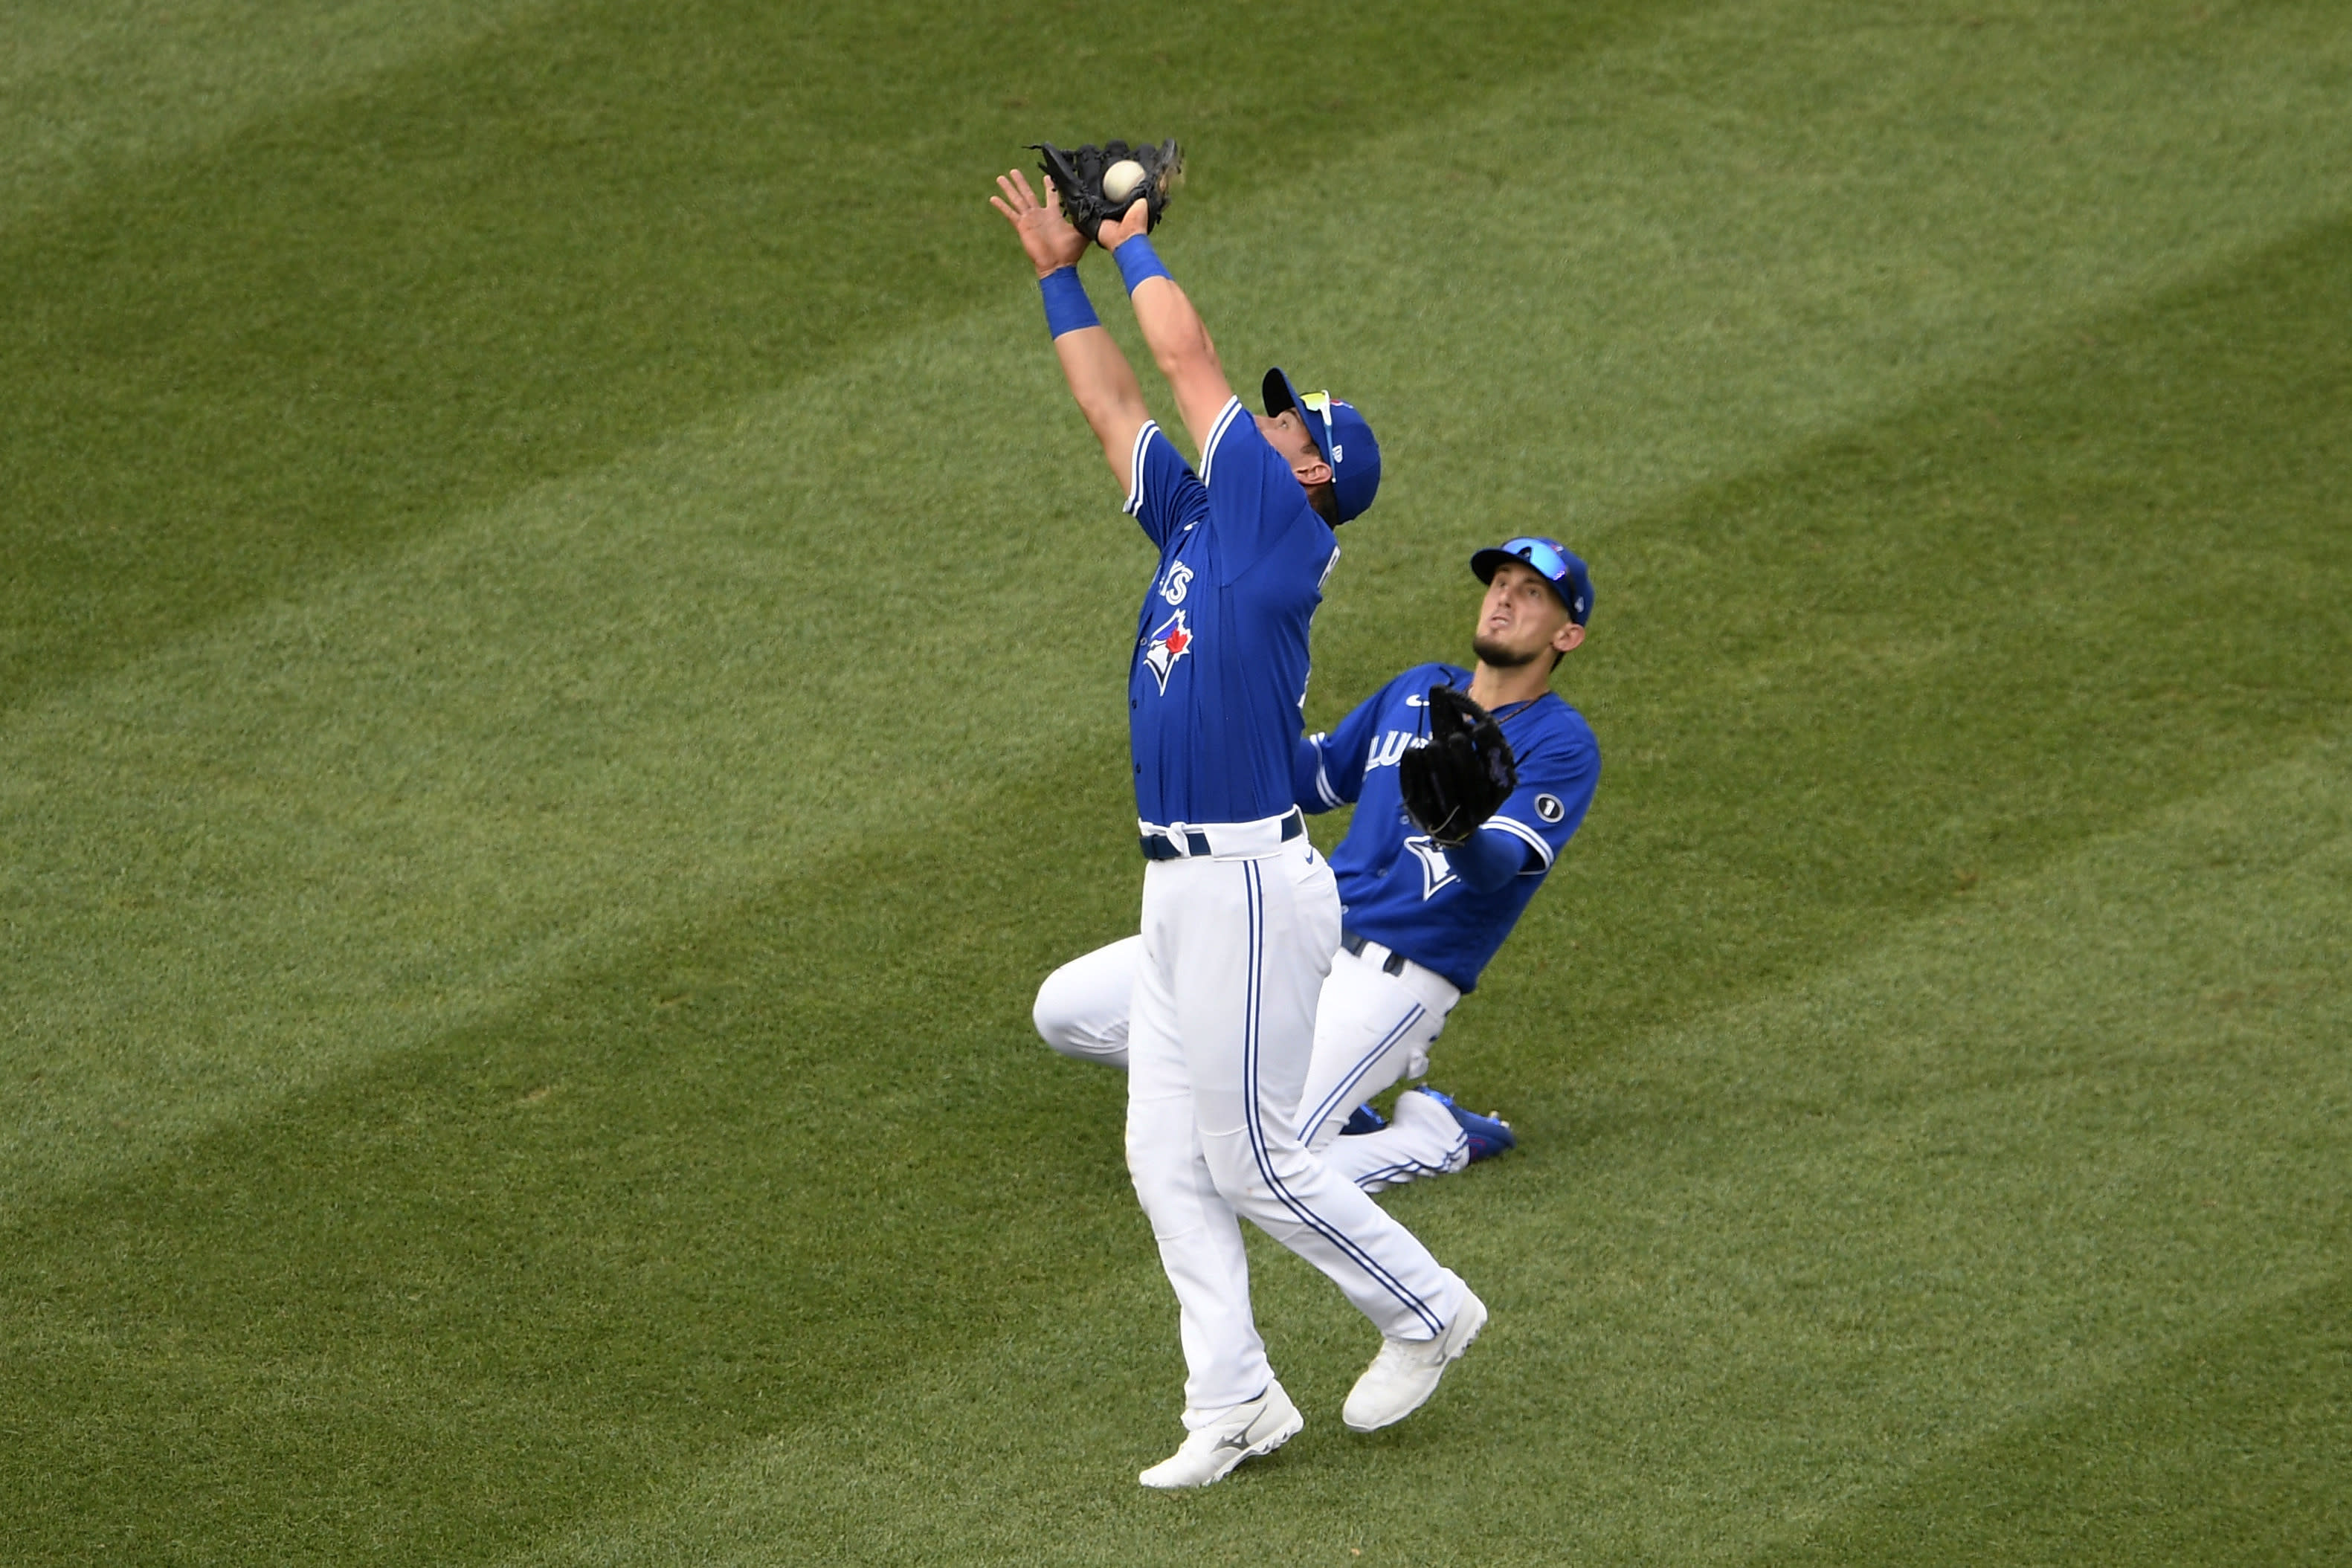 Toronto Blue Jays second baseman Joe Panik, front, makes a catch for the out on a fly ball by Washington Nationals' Adam Eaton during the fourth inning of a baseball game Thursday, July 30, 2020, in Washington. At right is Blue Jays' Cavan Biggio. (AP Photo/Nick Wass)